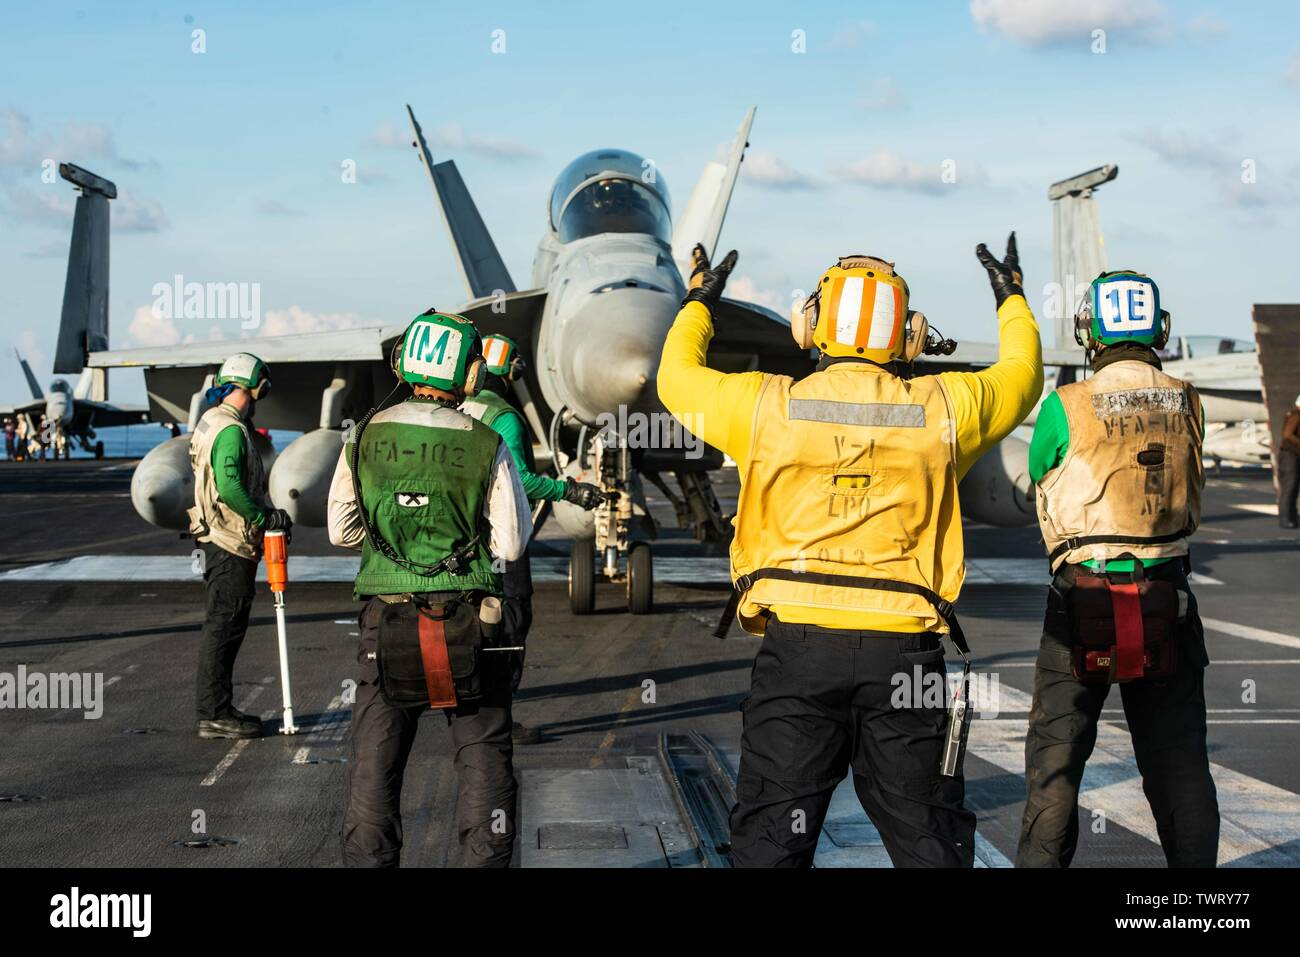 190620-N-CL027-2062  SOUTH CHINA SEA (June 20, 2019) Sailors direct the movement of an F/A-18F Super Hornet from Strike Fighter Squadron (VFA) 102 prior to launching on the flight deck aboard the Navy's forward-deployed aircraft carrier USS Ronald Reagan (CVN 76) during flight operations. Ronald Reagan, the flagship of Carrier Strike Group 5, provides a combat-ready force that protects and defends the collective maritime interests of its allies and partners in the Indo-Pacific region. (U.S. Navy photo by Mass Communication Specialist 2nd Class Janweb B. Lagazo/Released) - Stock Image